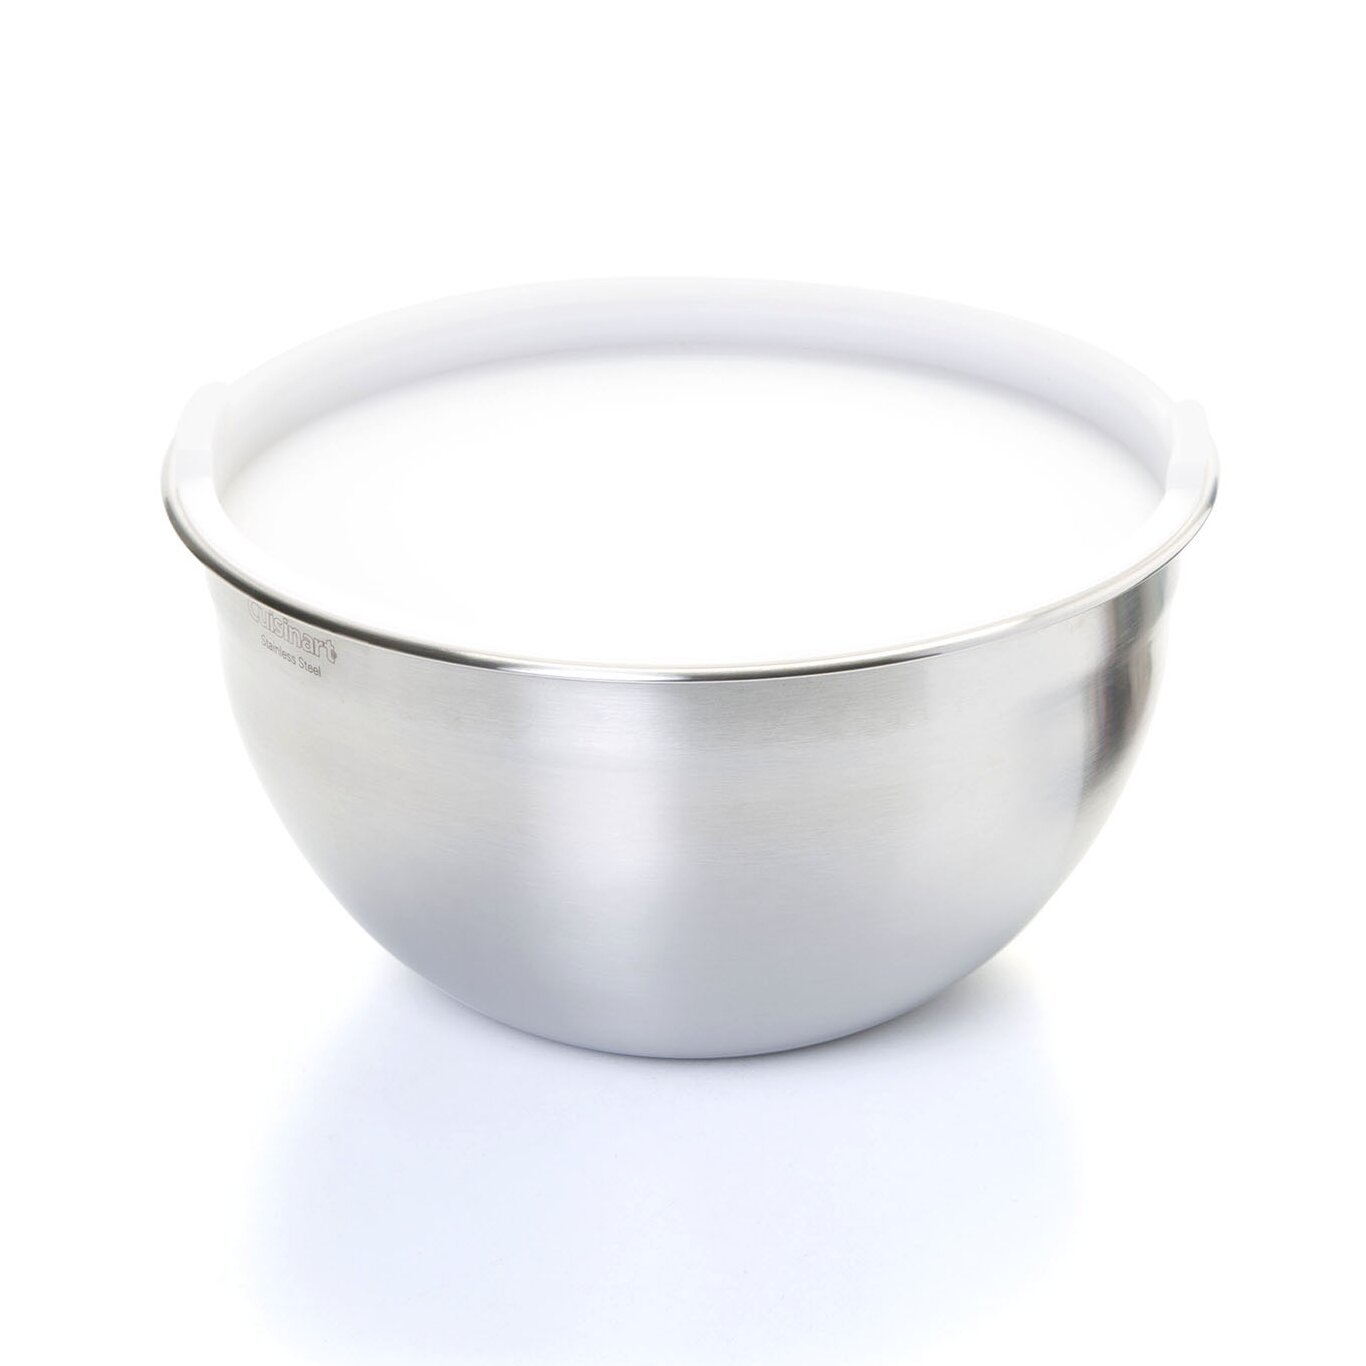 Cuisinart stainless steel mixing bowls with lids - Cuisinart 3 Piece Mixing Bowl Set